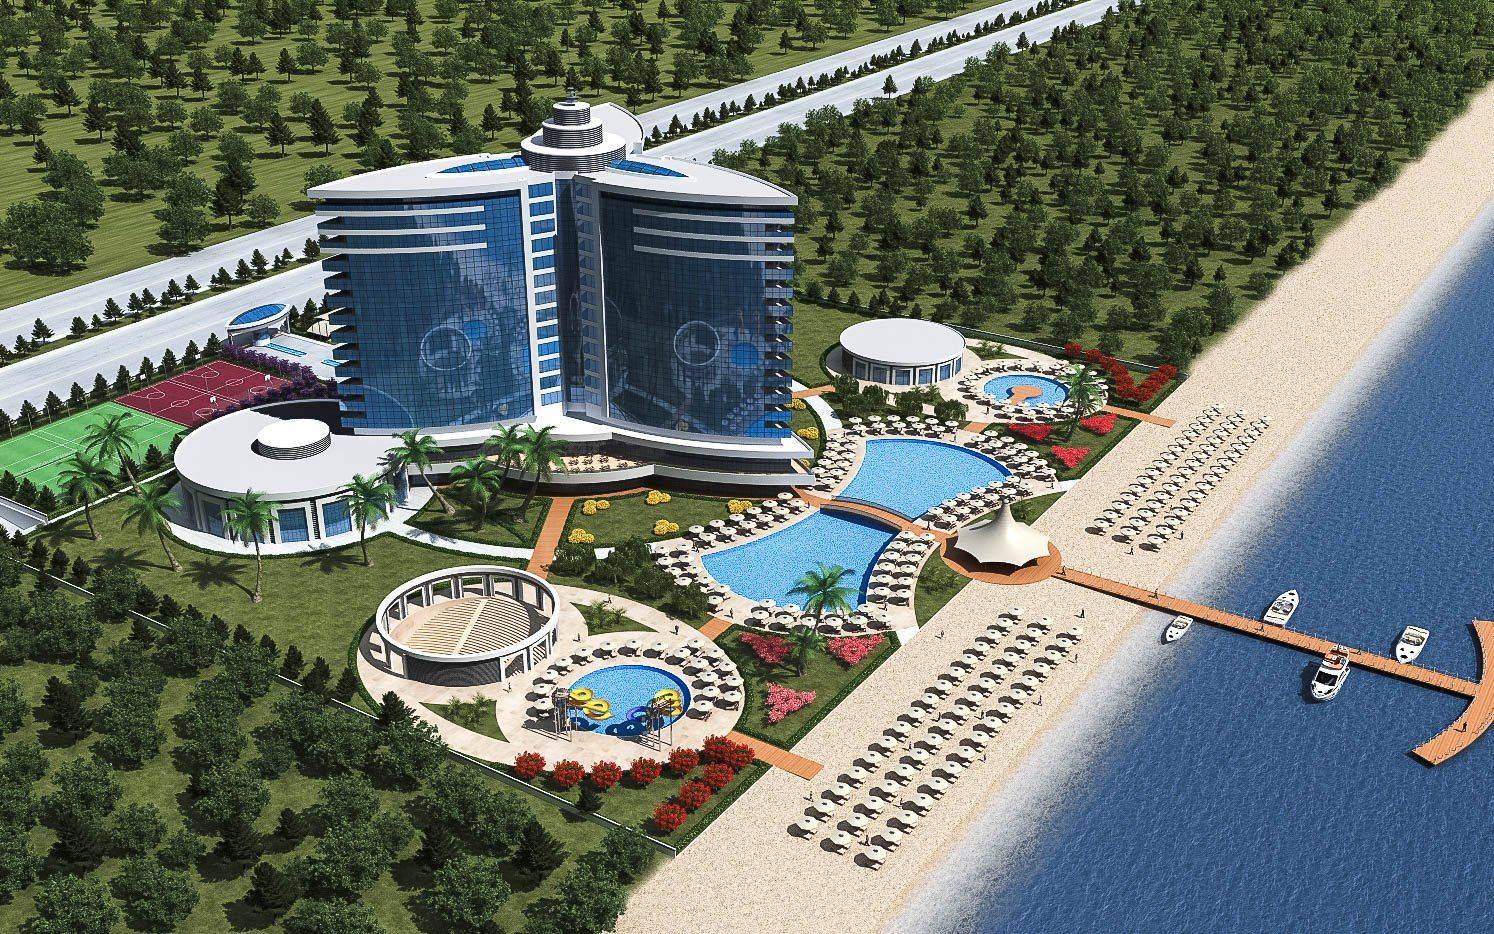 IZBERBASSKY-RESORT-HOTEL-DNA-MİMARLIK